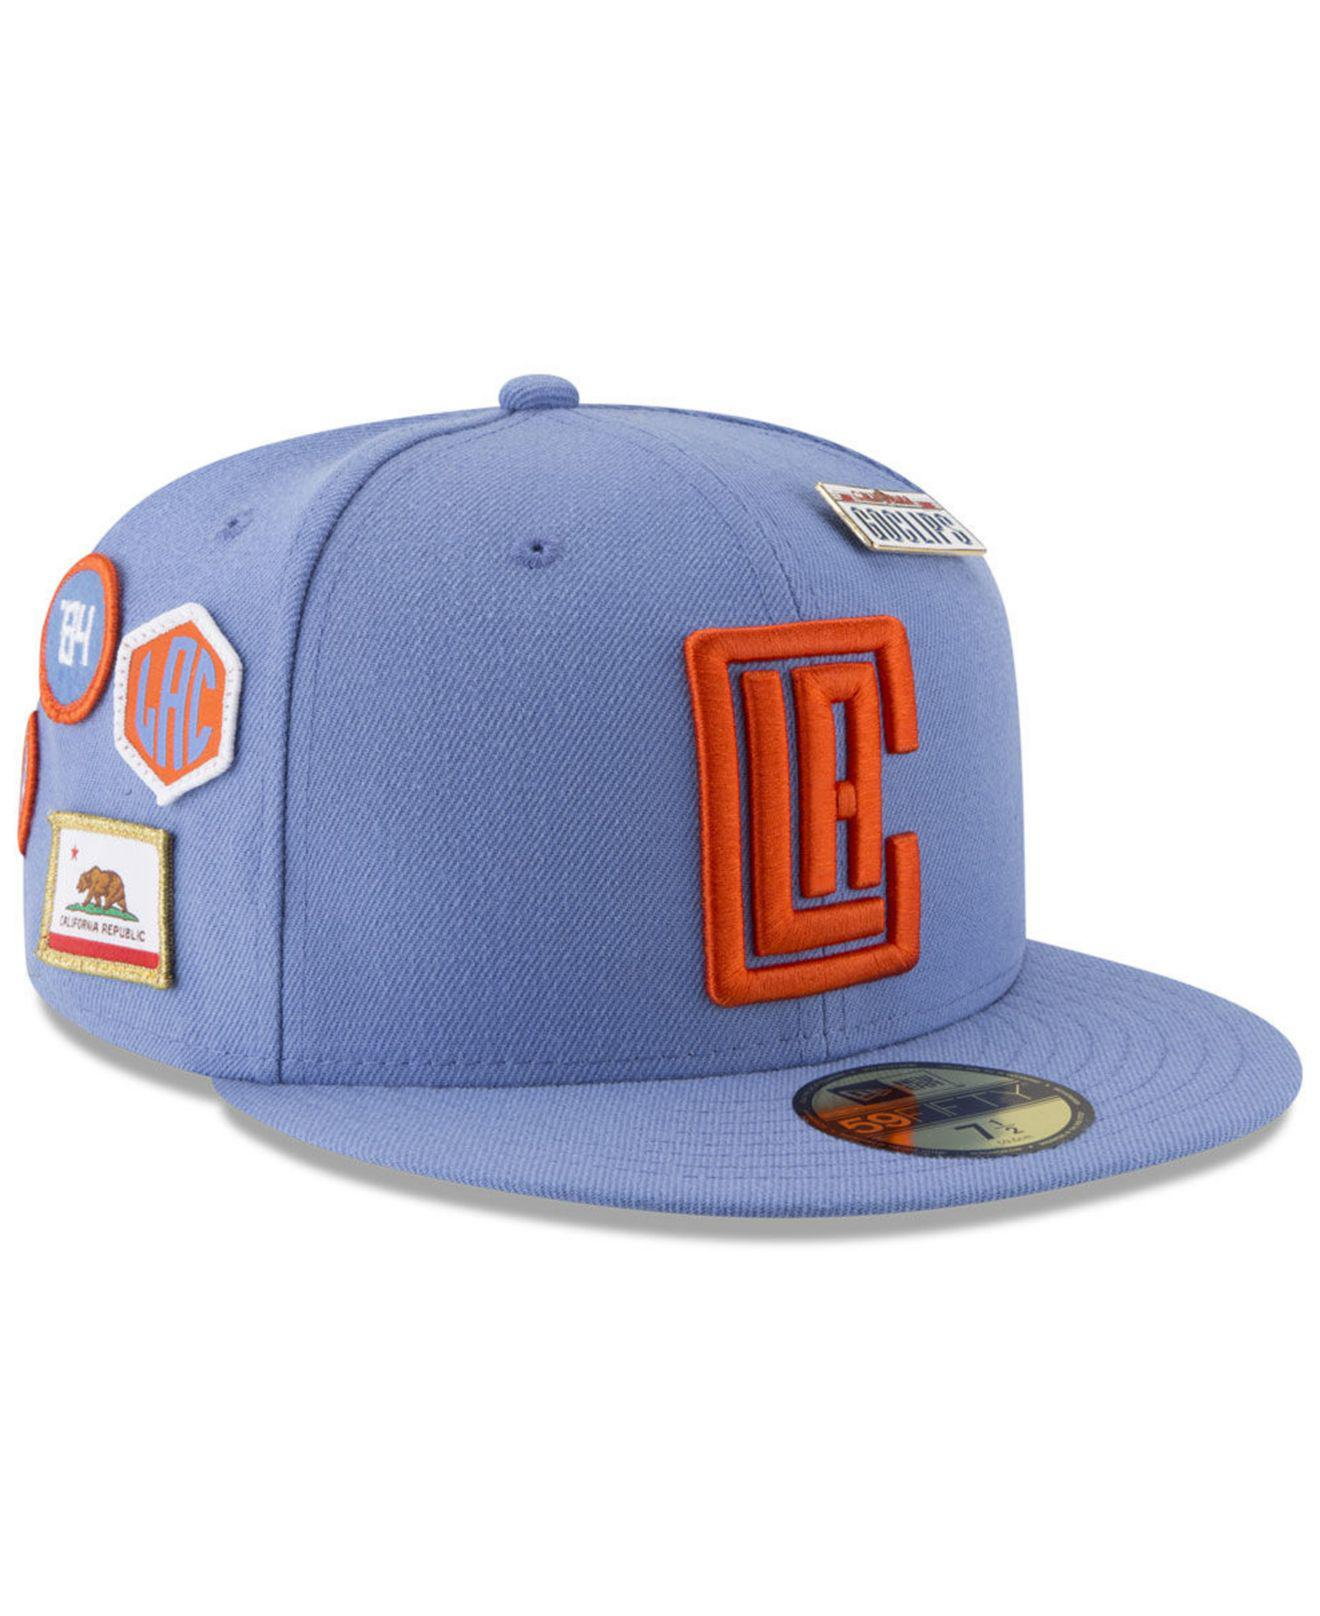 huge discount 70ddb 4f9d0 KTZ. Men s Blue Los Angeles Clippers City On-court 59fifty Fitted Cap